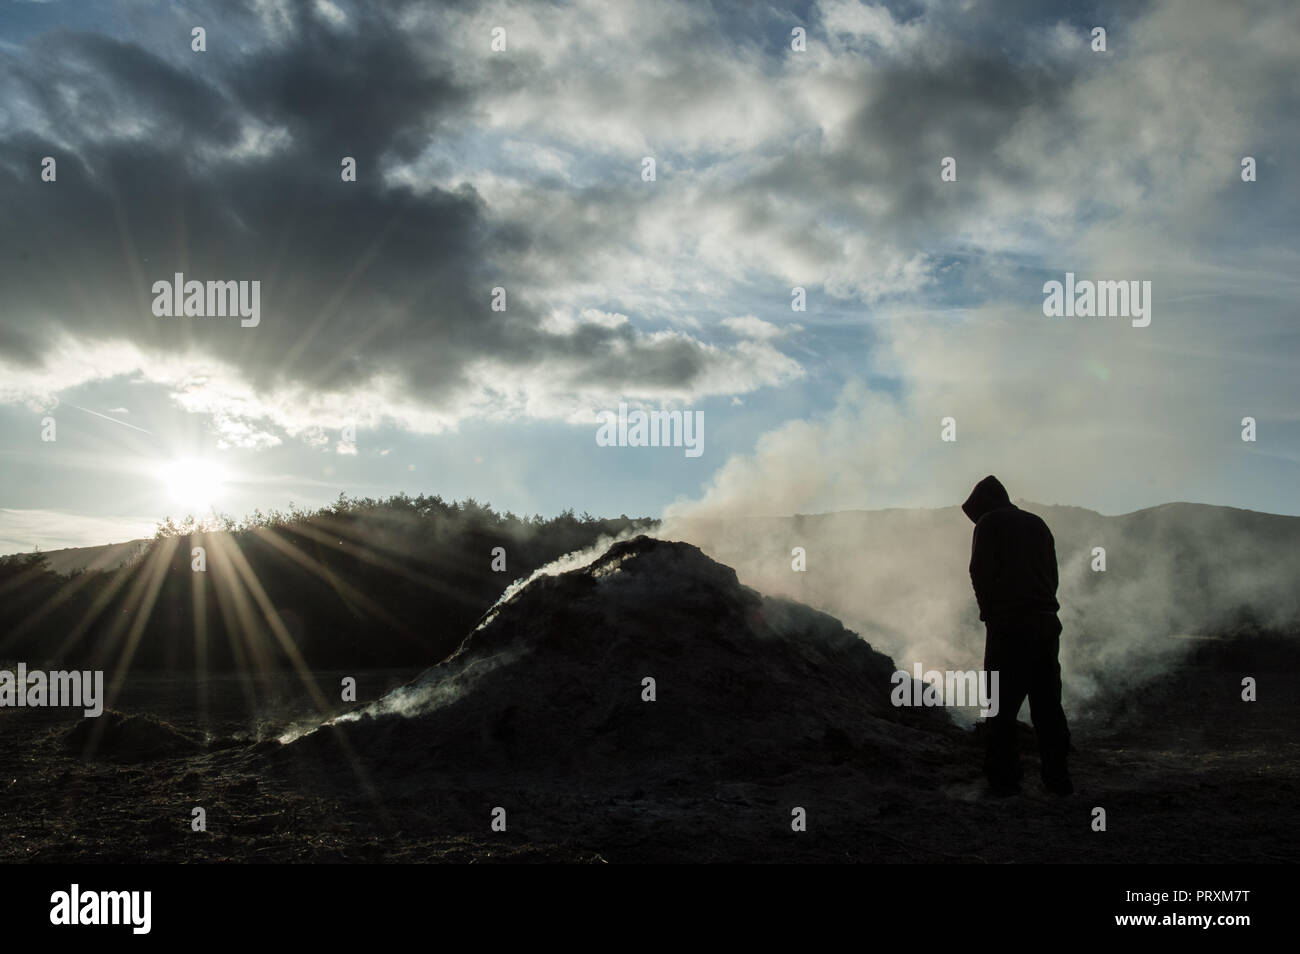 A hooded figure, silhouetted against the white smoke of a bonfire. Backlit from the afternoon sun. - Stock Image